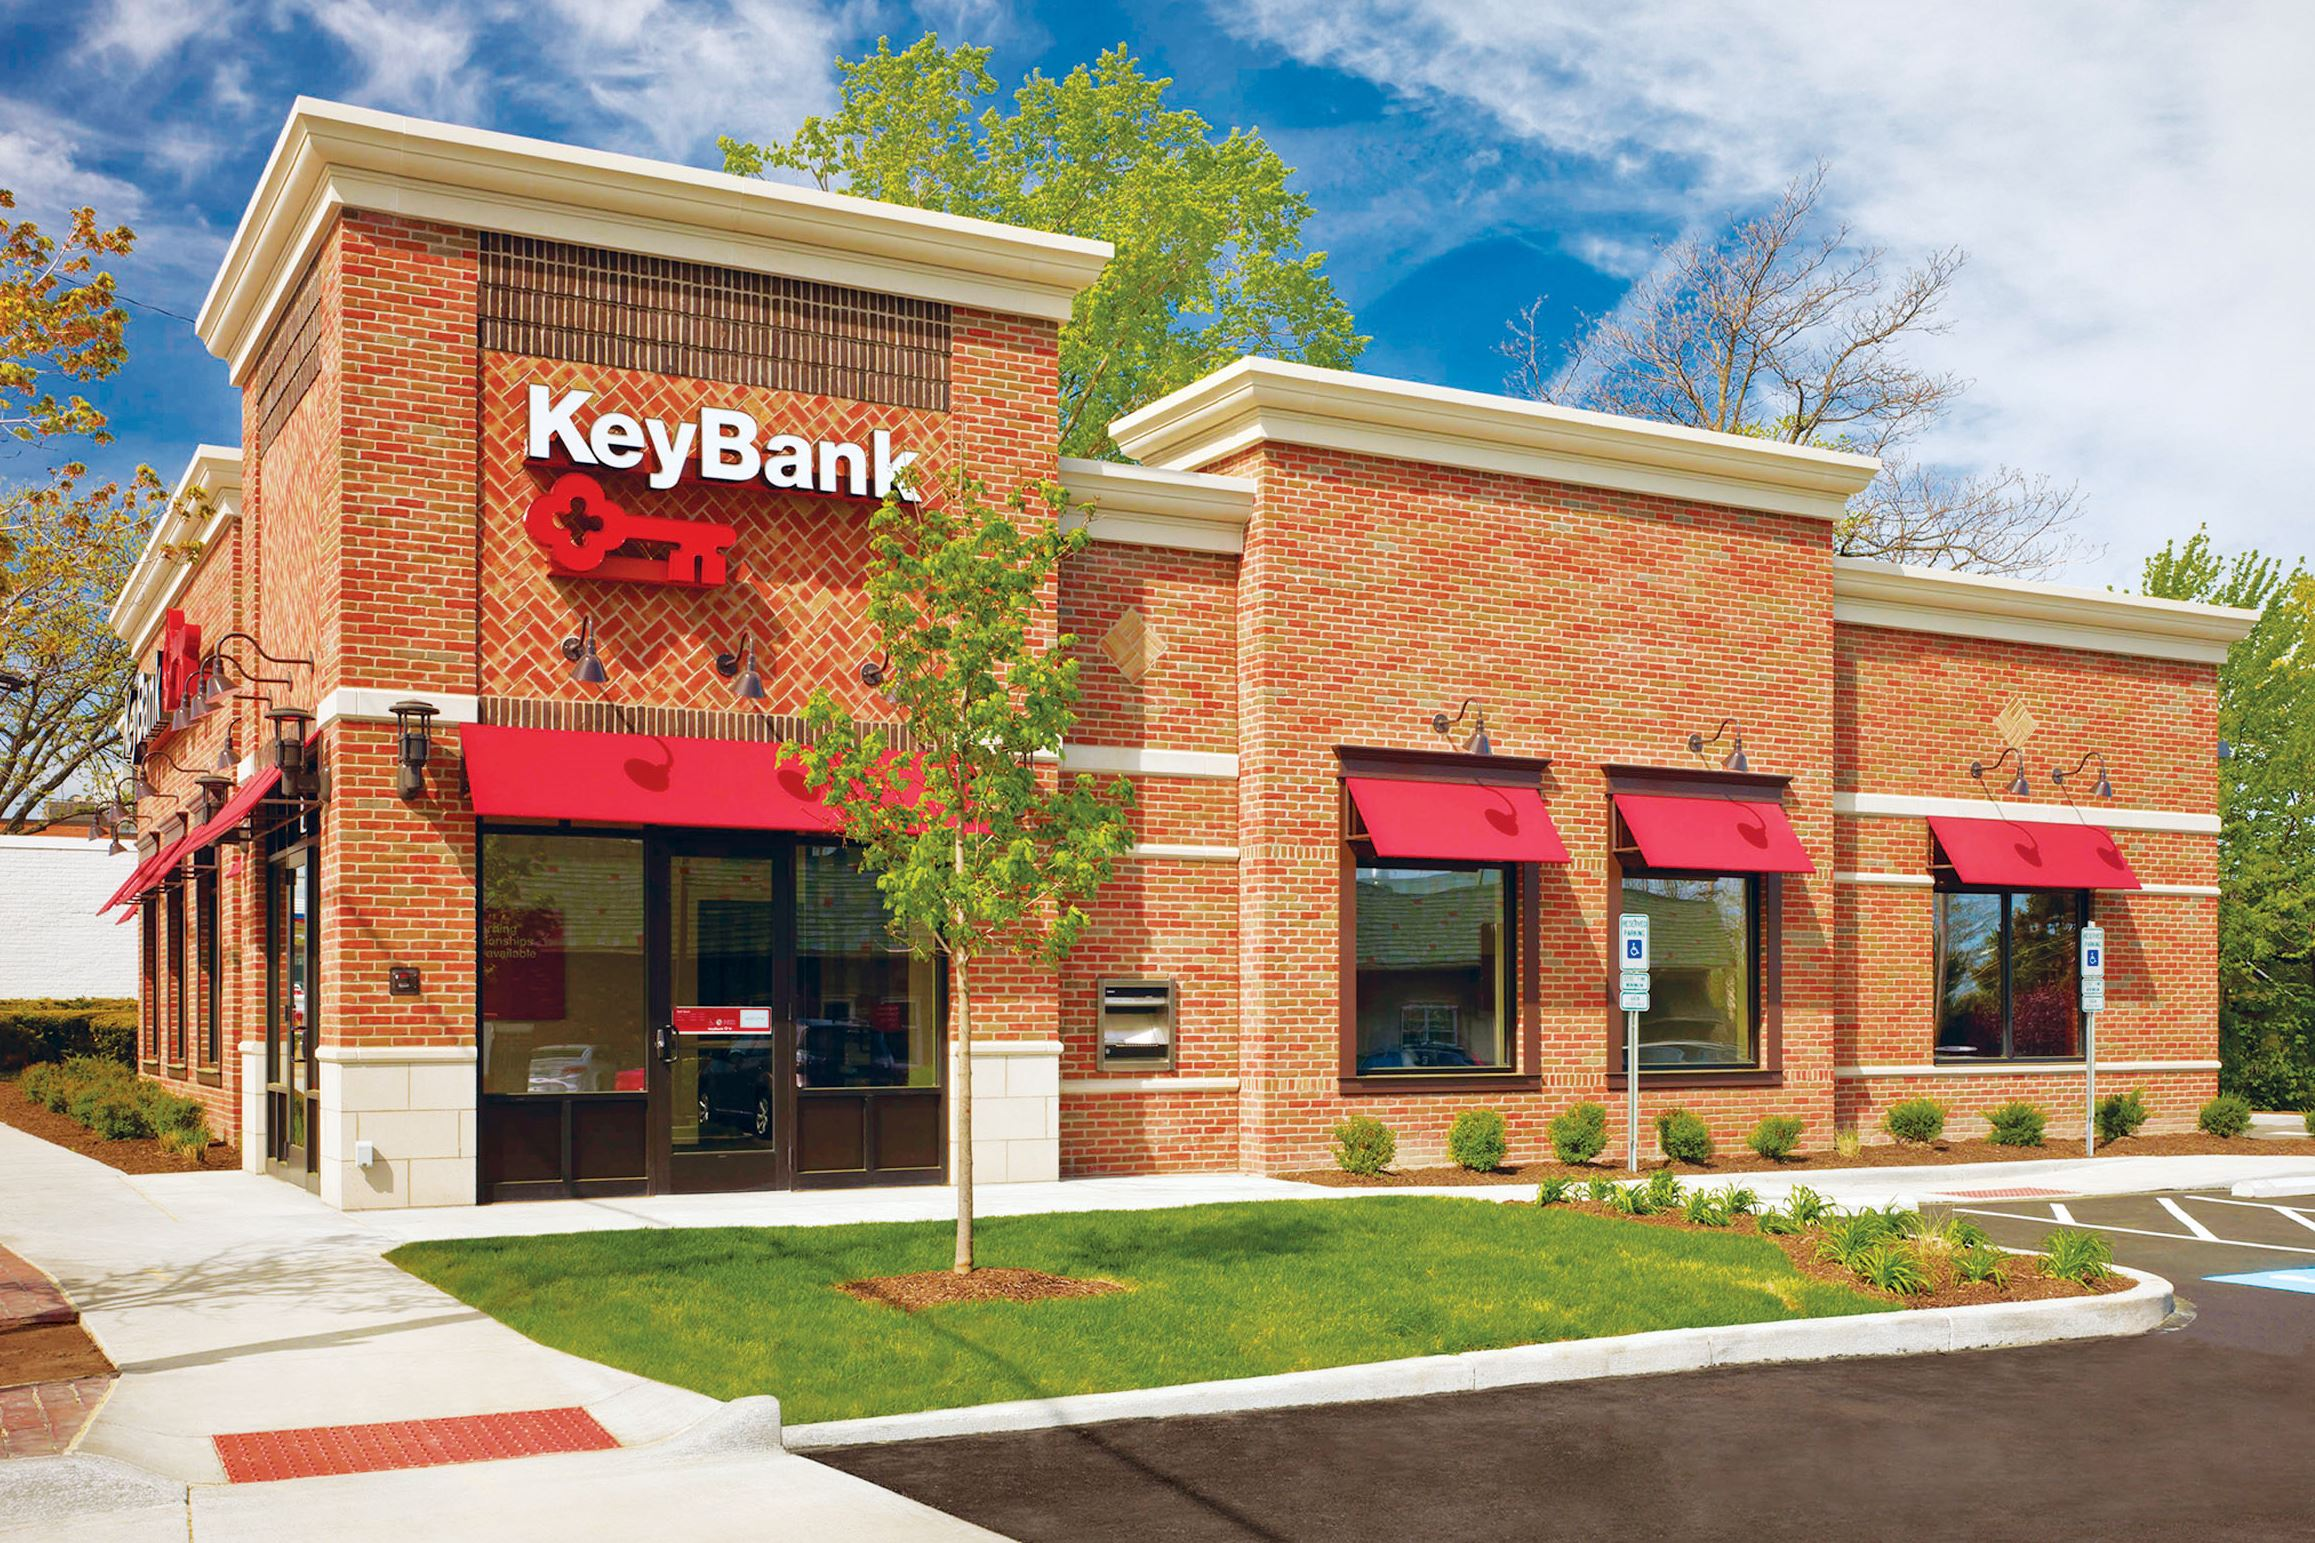 KeyBank to convert First Niagara Bank's branches over long weekend